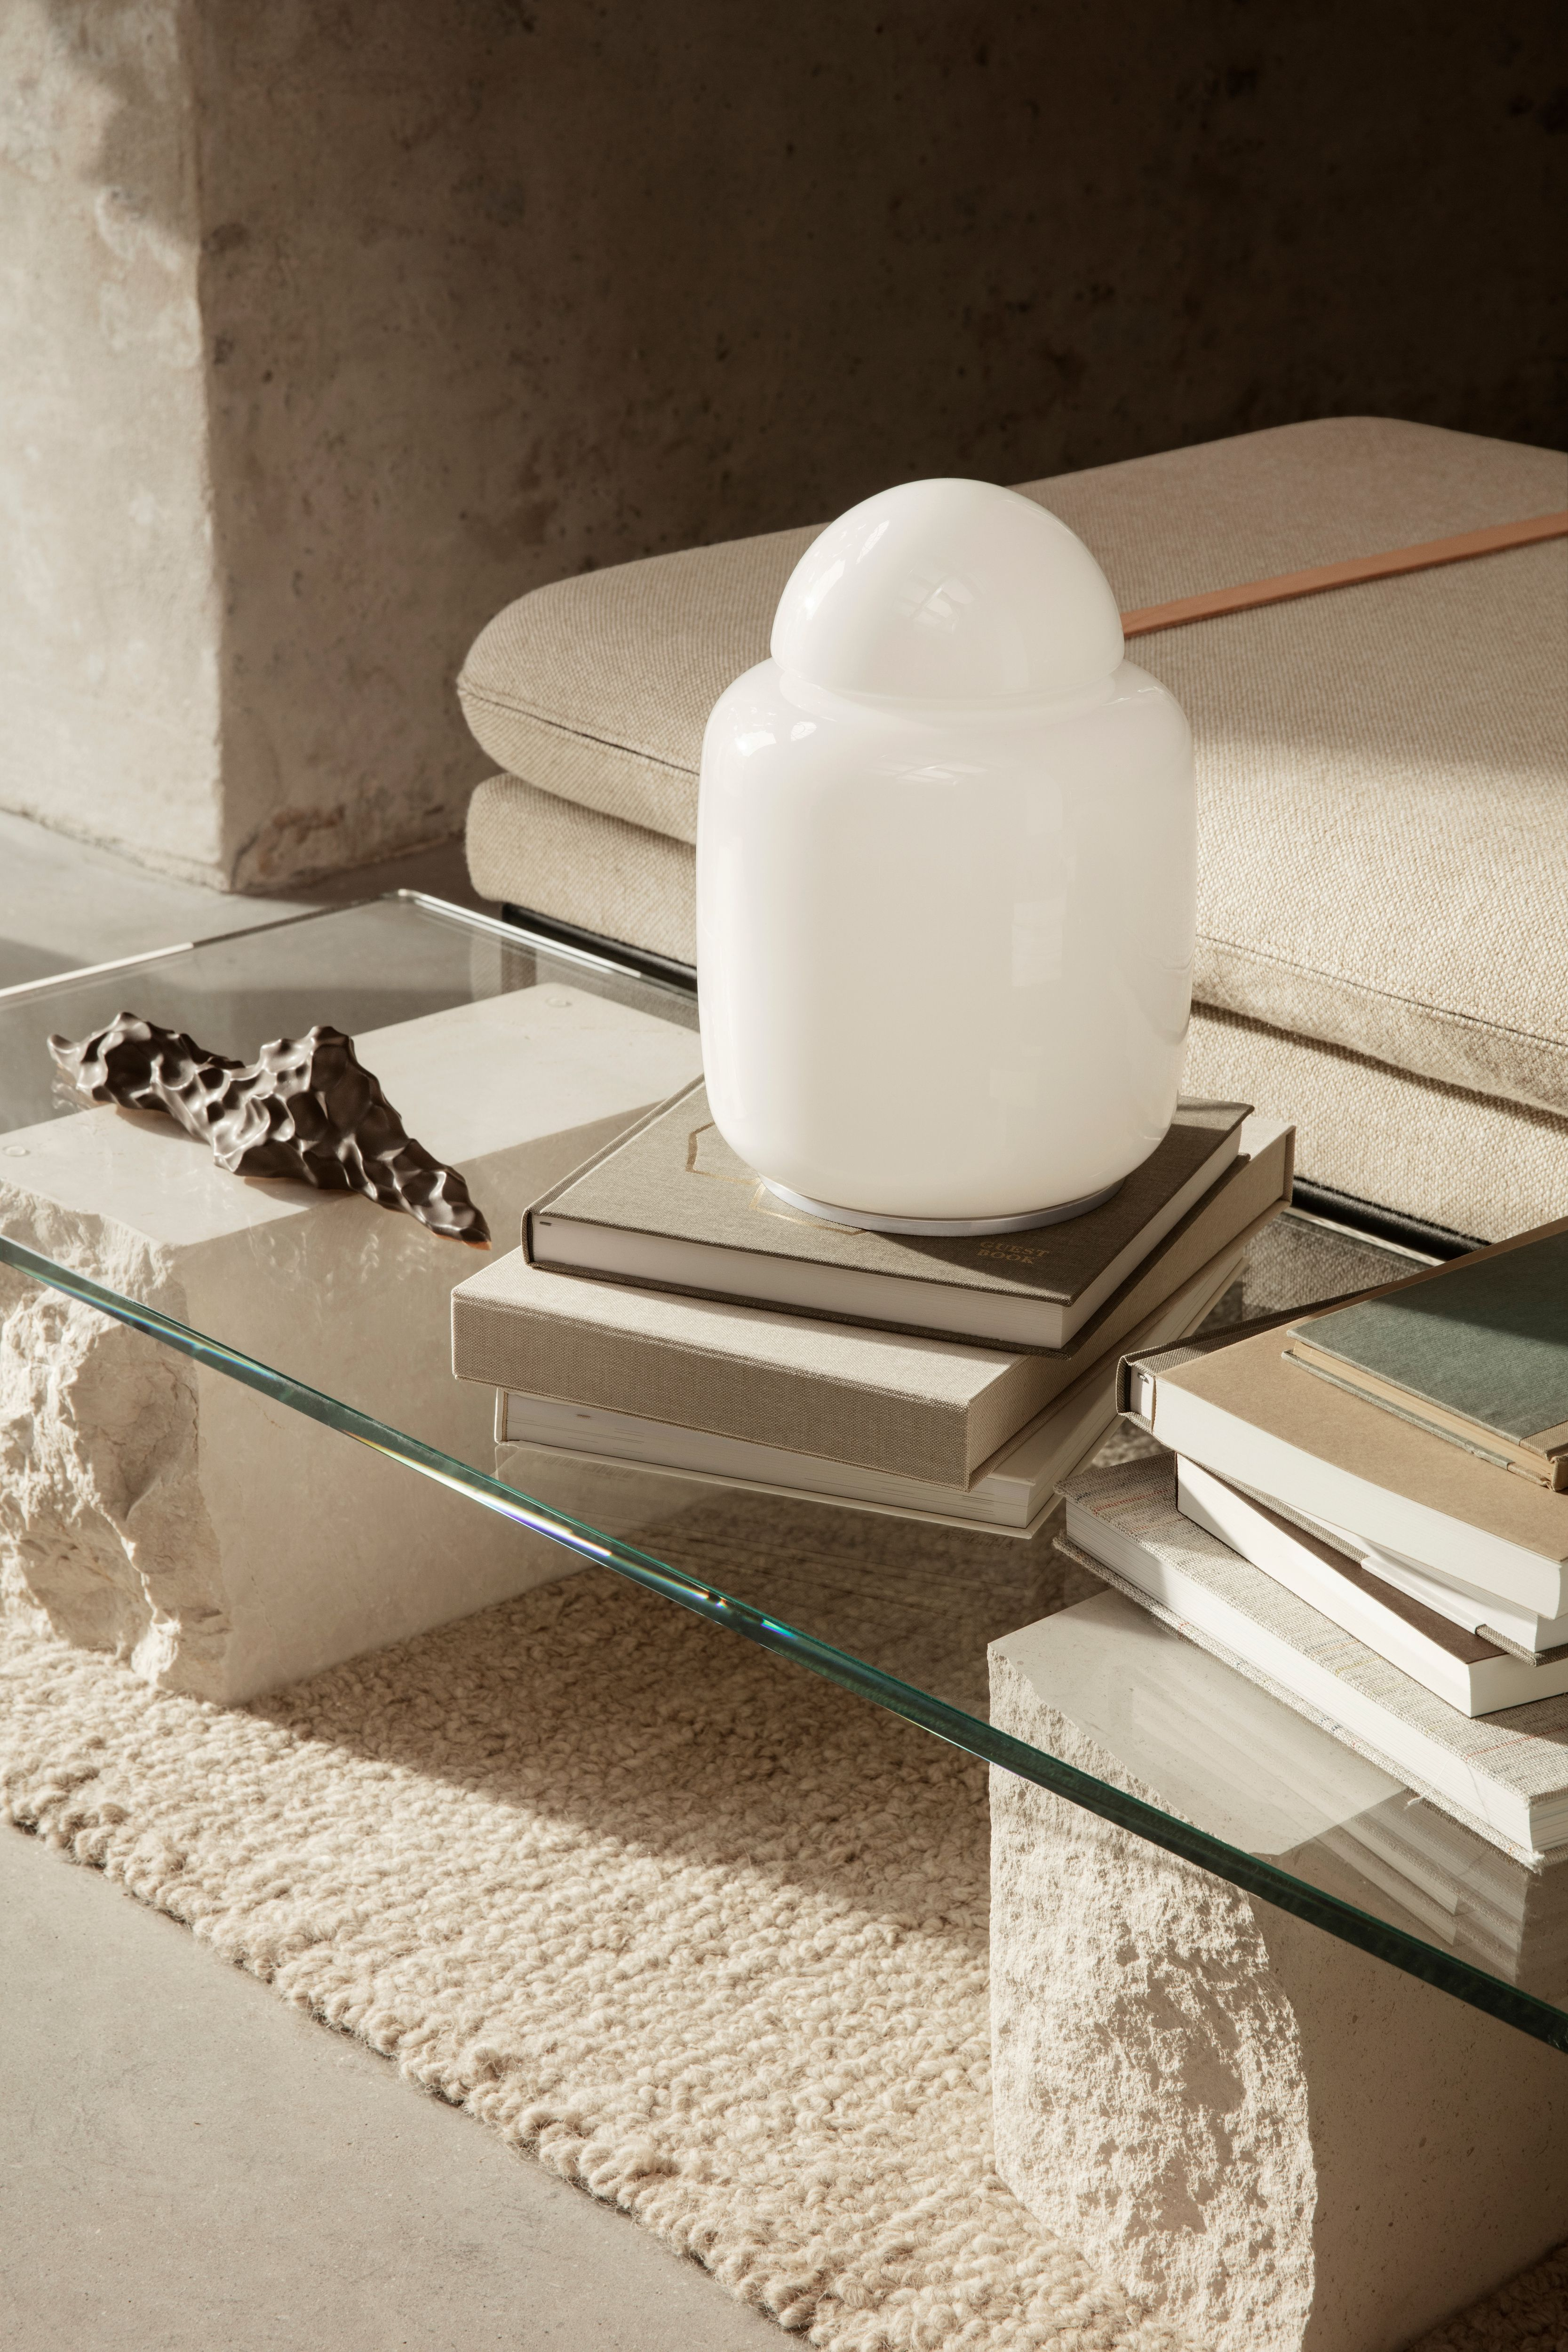 Mineral Coffee Table White Table Lamp Coffee Table Lamp Decor [ 5000 x 3333 Pixel ]